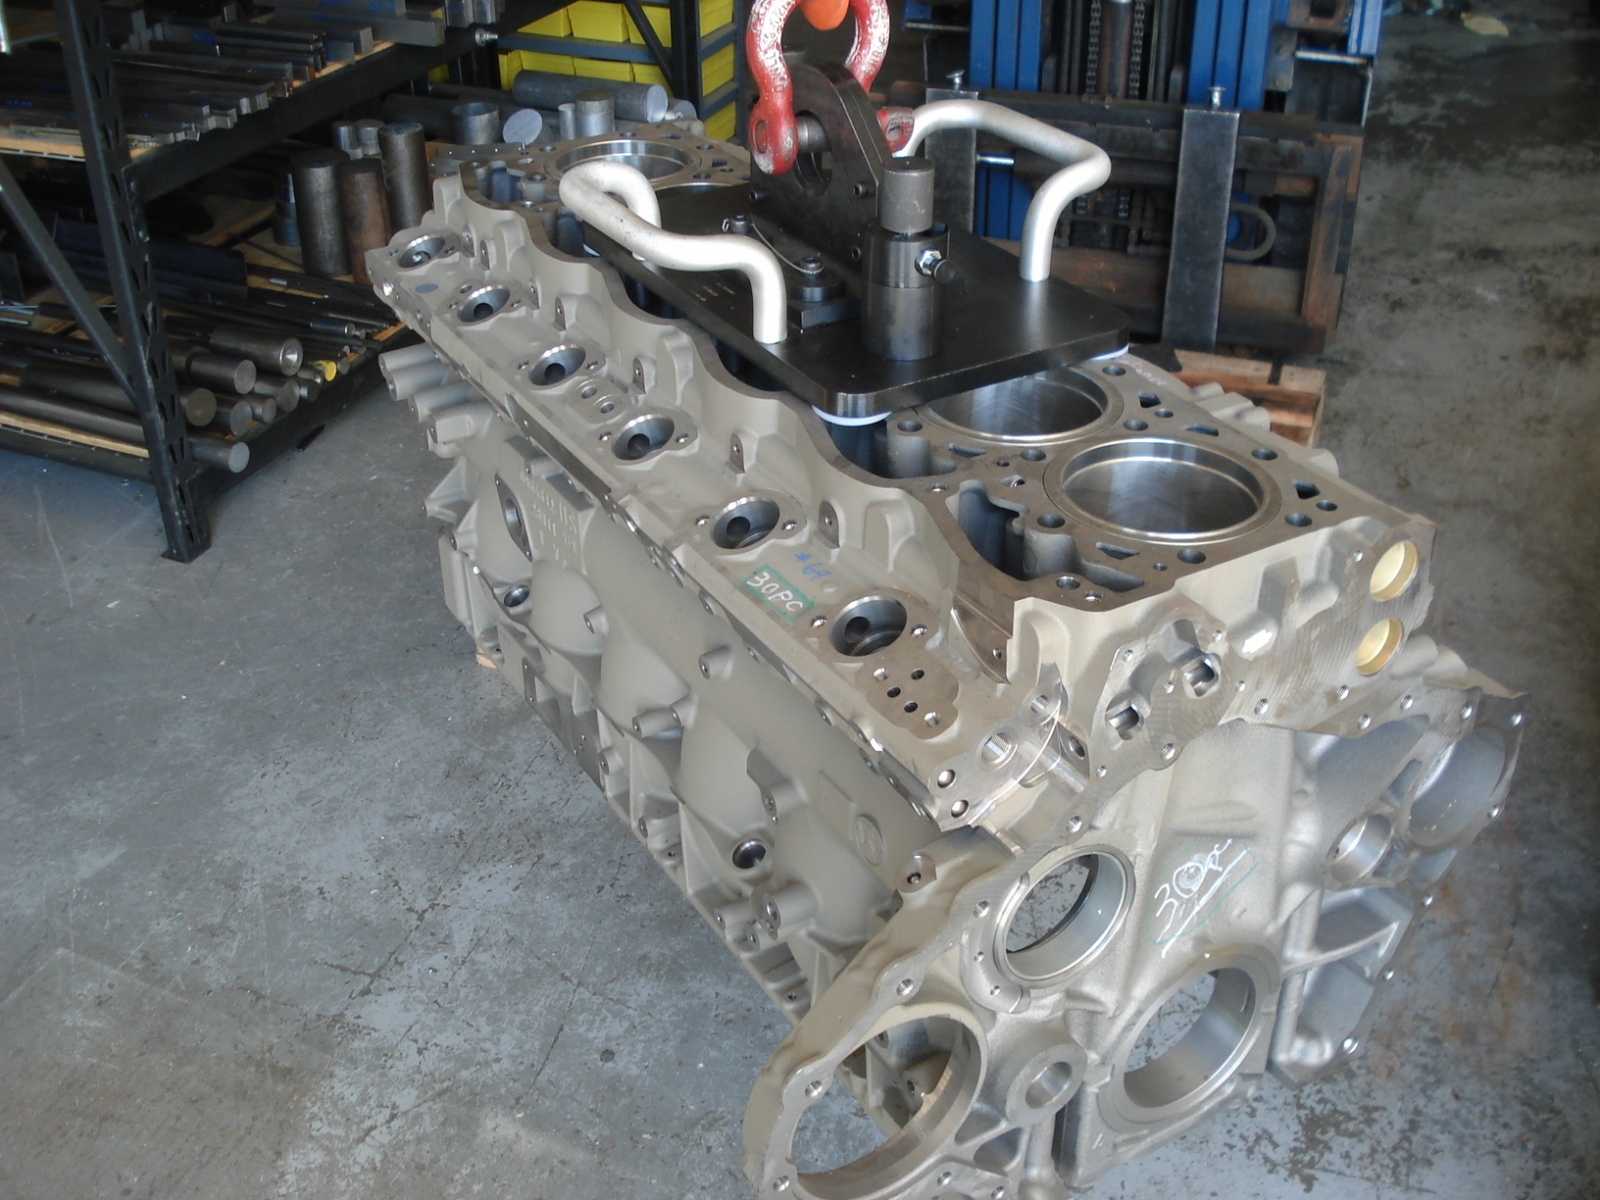 Lift assist for this 780 lbs. Engine Block